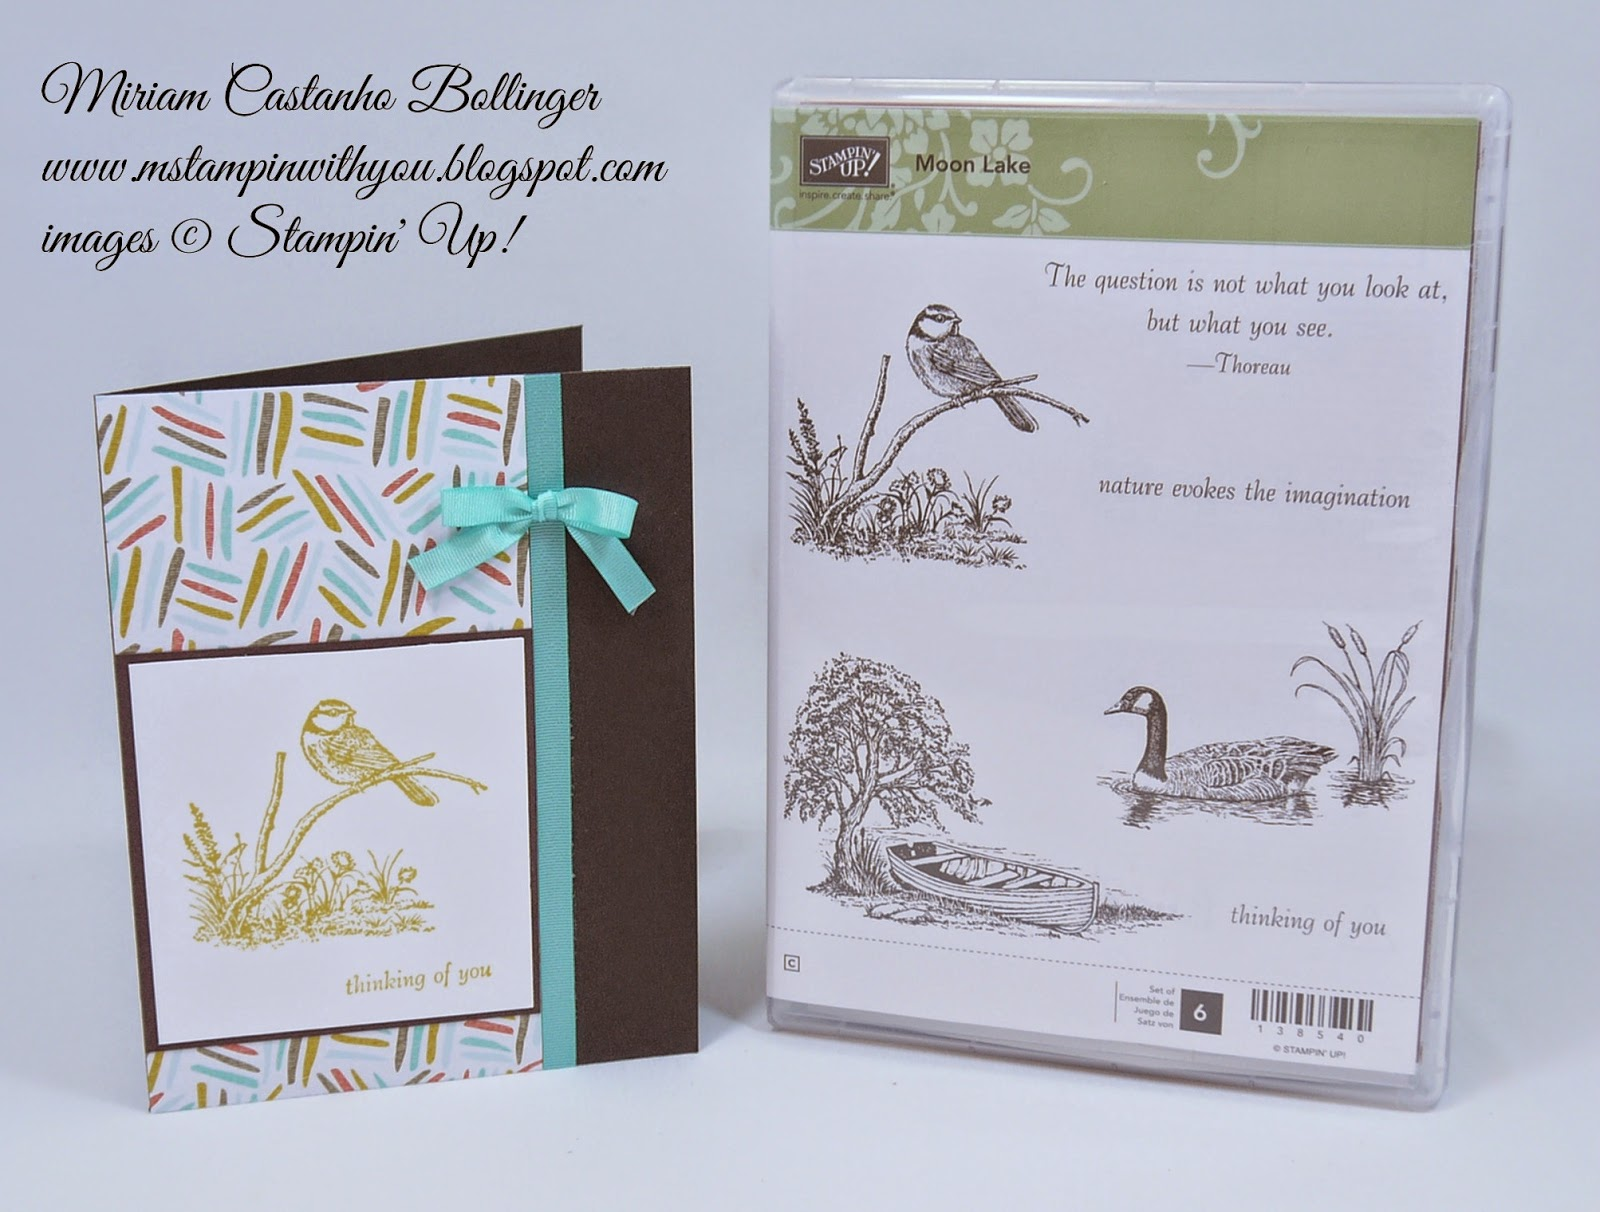 Miriam Castanho Bollinger, mstampinwithyou, stampin up, demosntrator, rs145, SAB, best year ever dsp, moon lake stamp set